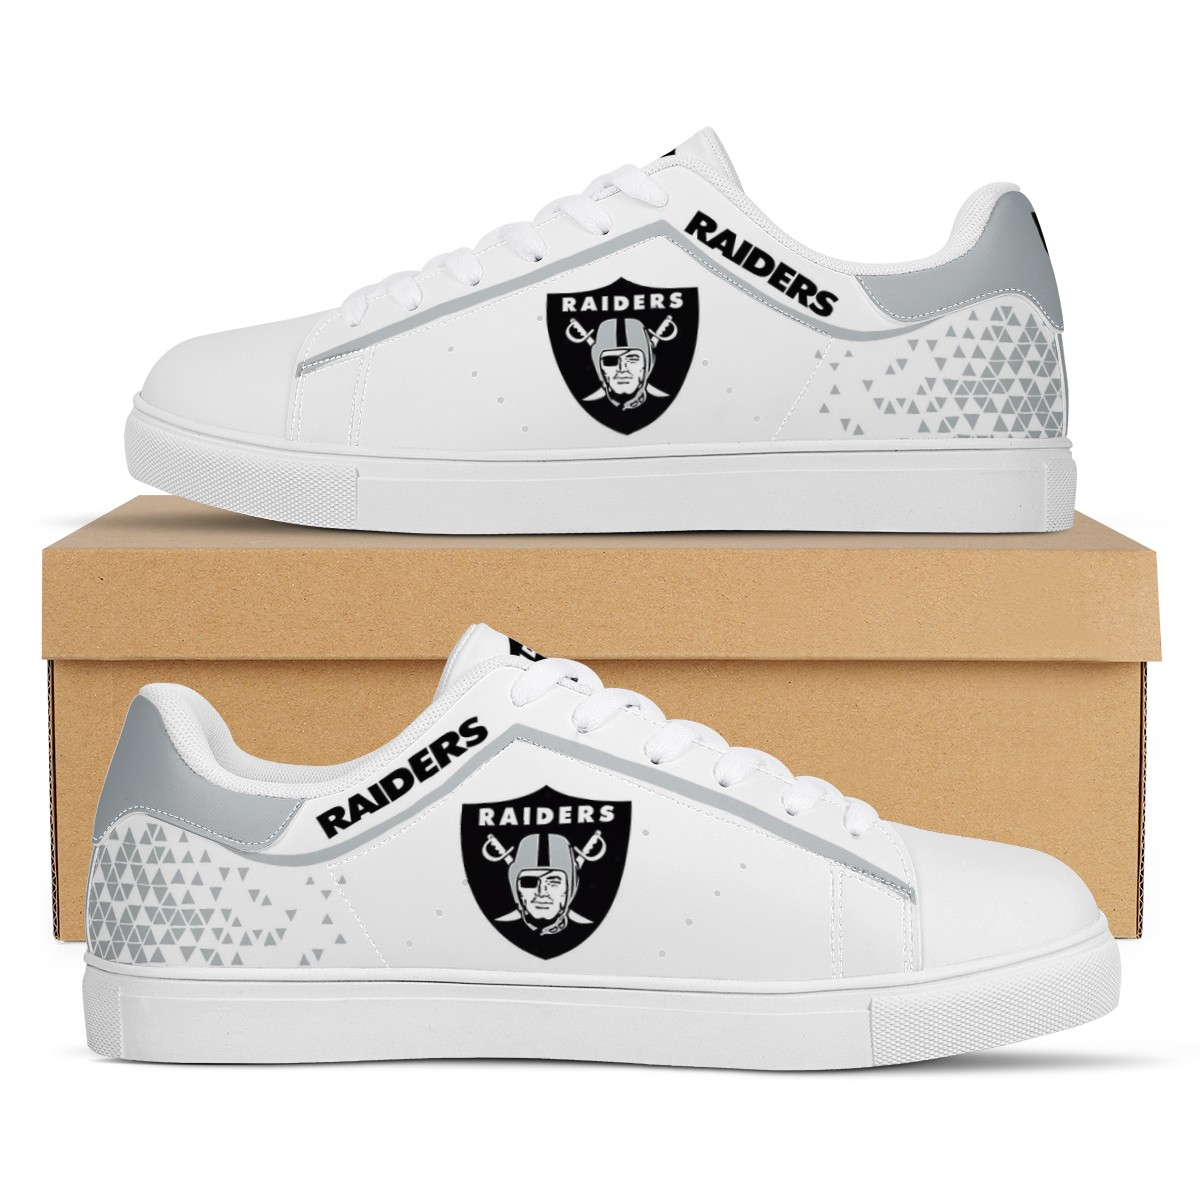 Women's Las Vegas Raiders Low Top Leather Sneakers 002